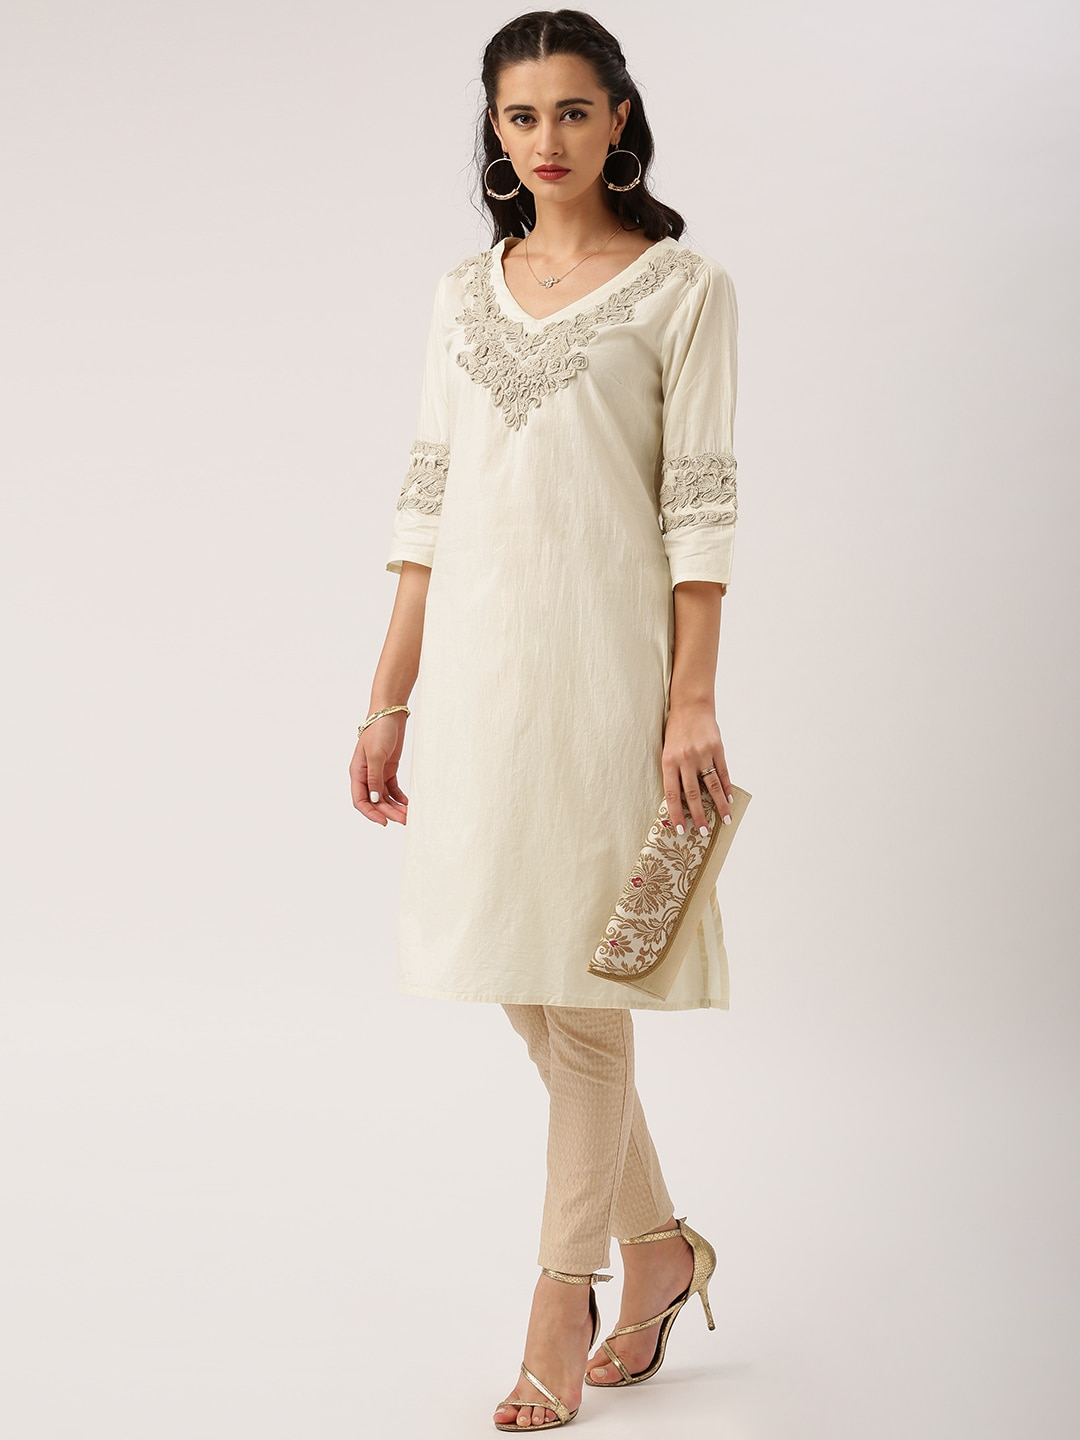 Buy All About You From Deepika Padukone Cream Coloured ...